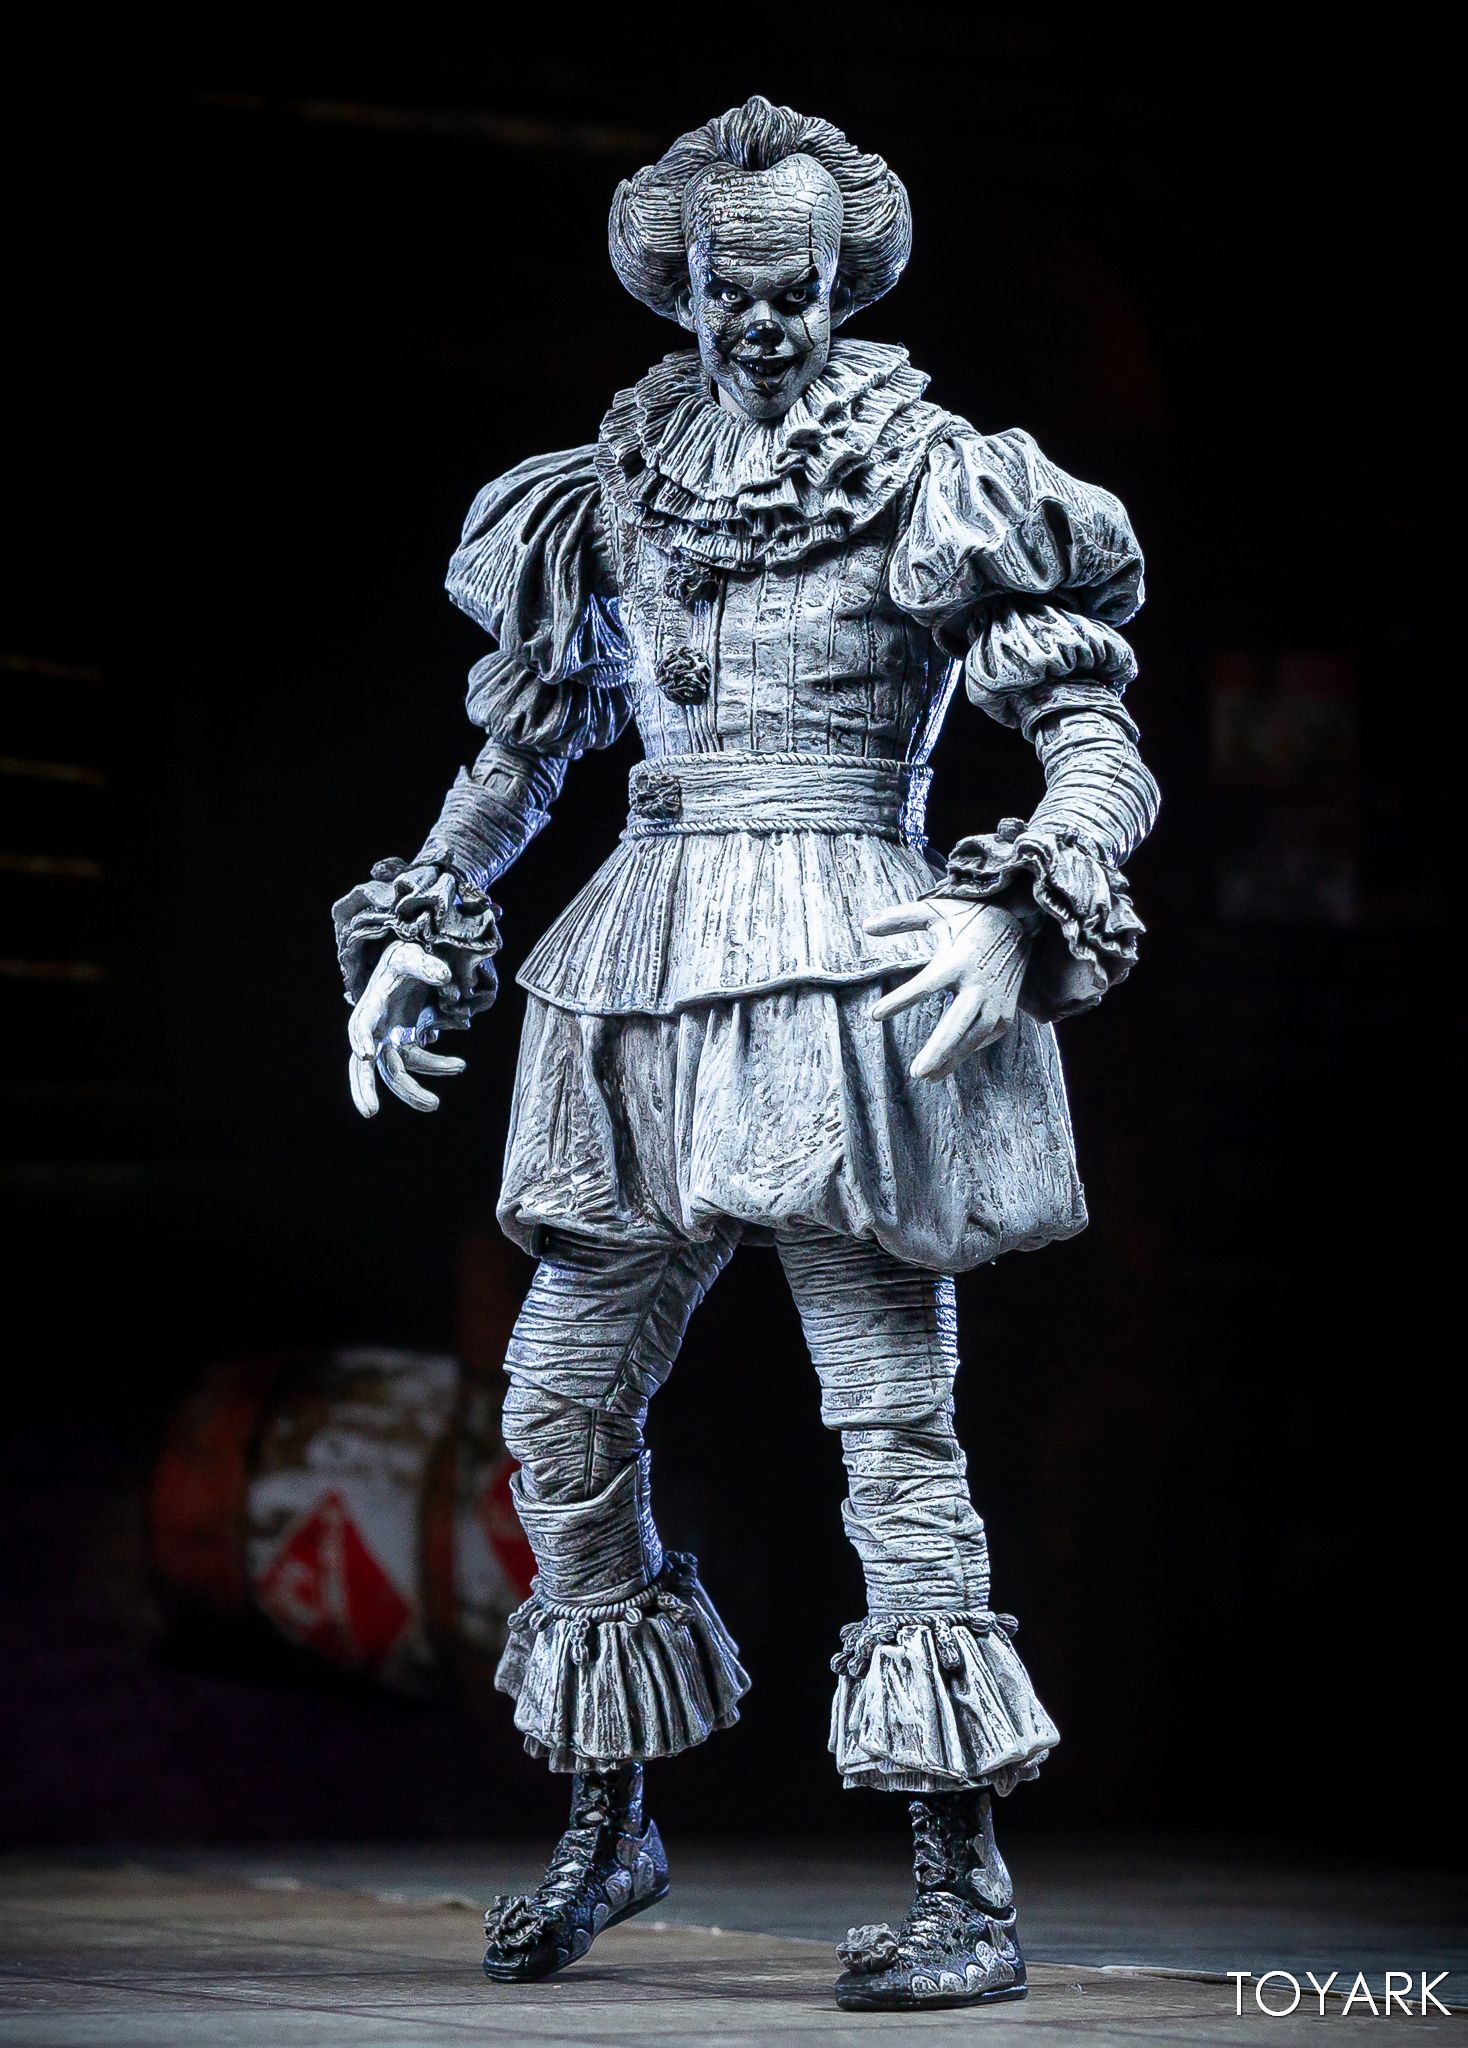 https://news.toyark.com/wp-content/uploads/sites/4/2019/07/SDCC-2019-Etched-Pennywise-NECA-006.jpg